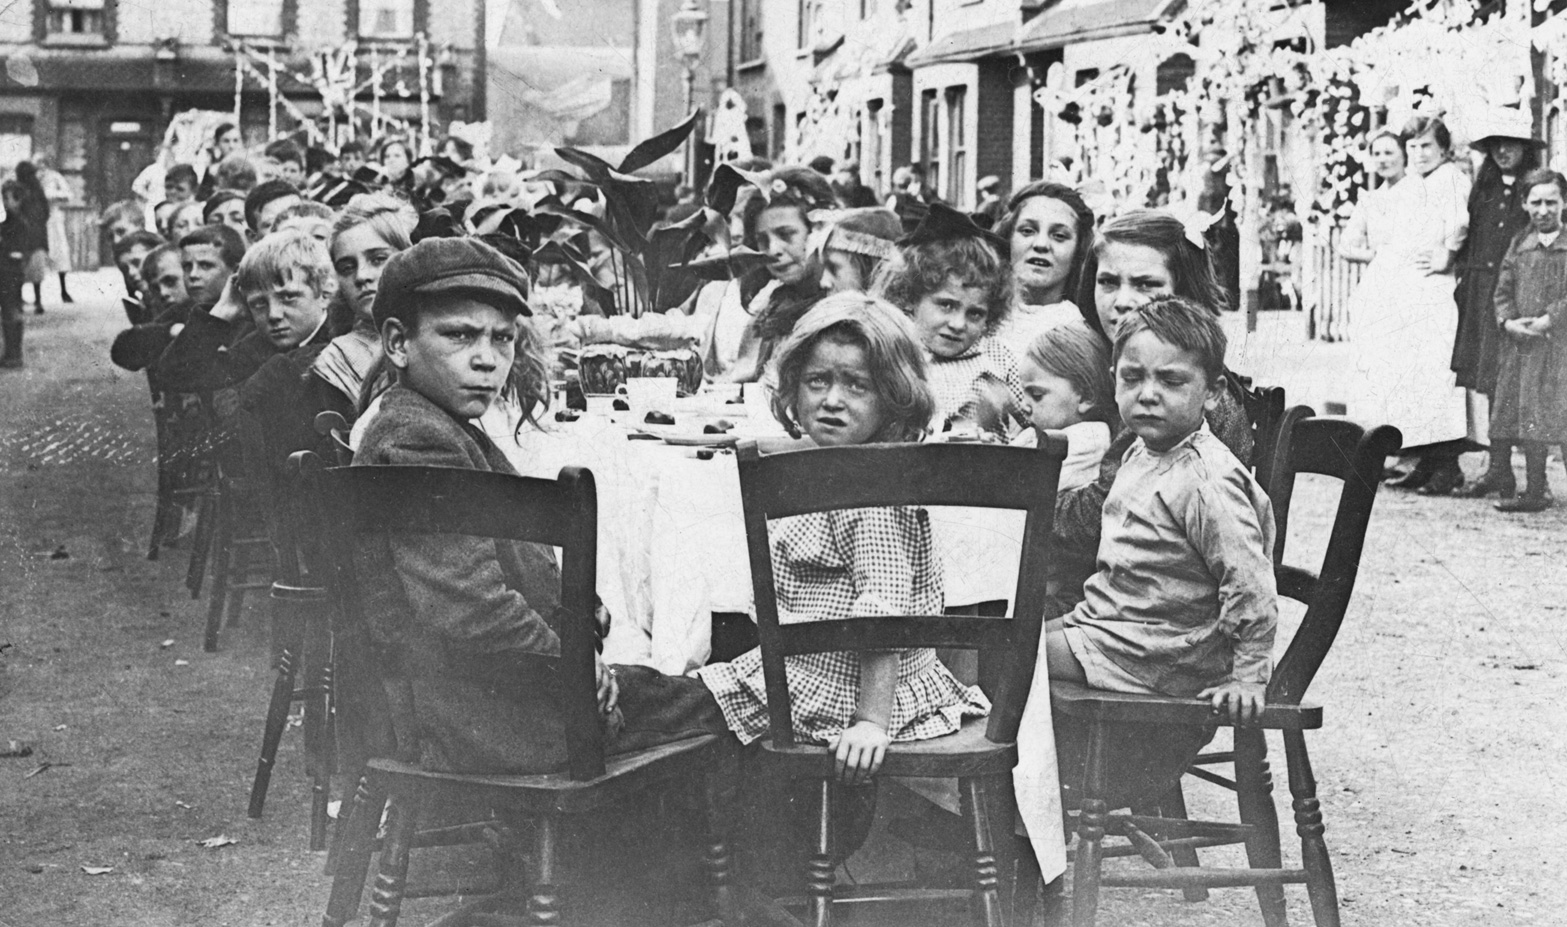 A black and white photo of young children seated around a table in a street during a Peace Tea in 1919